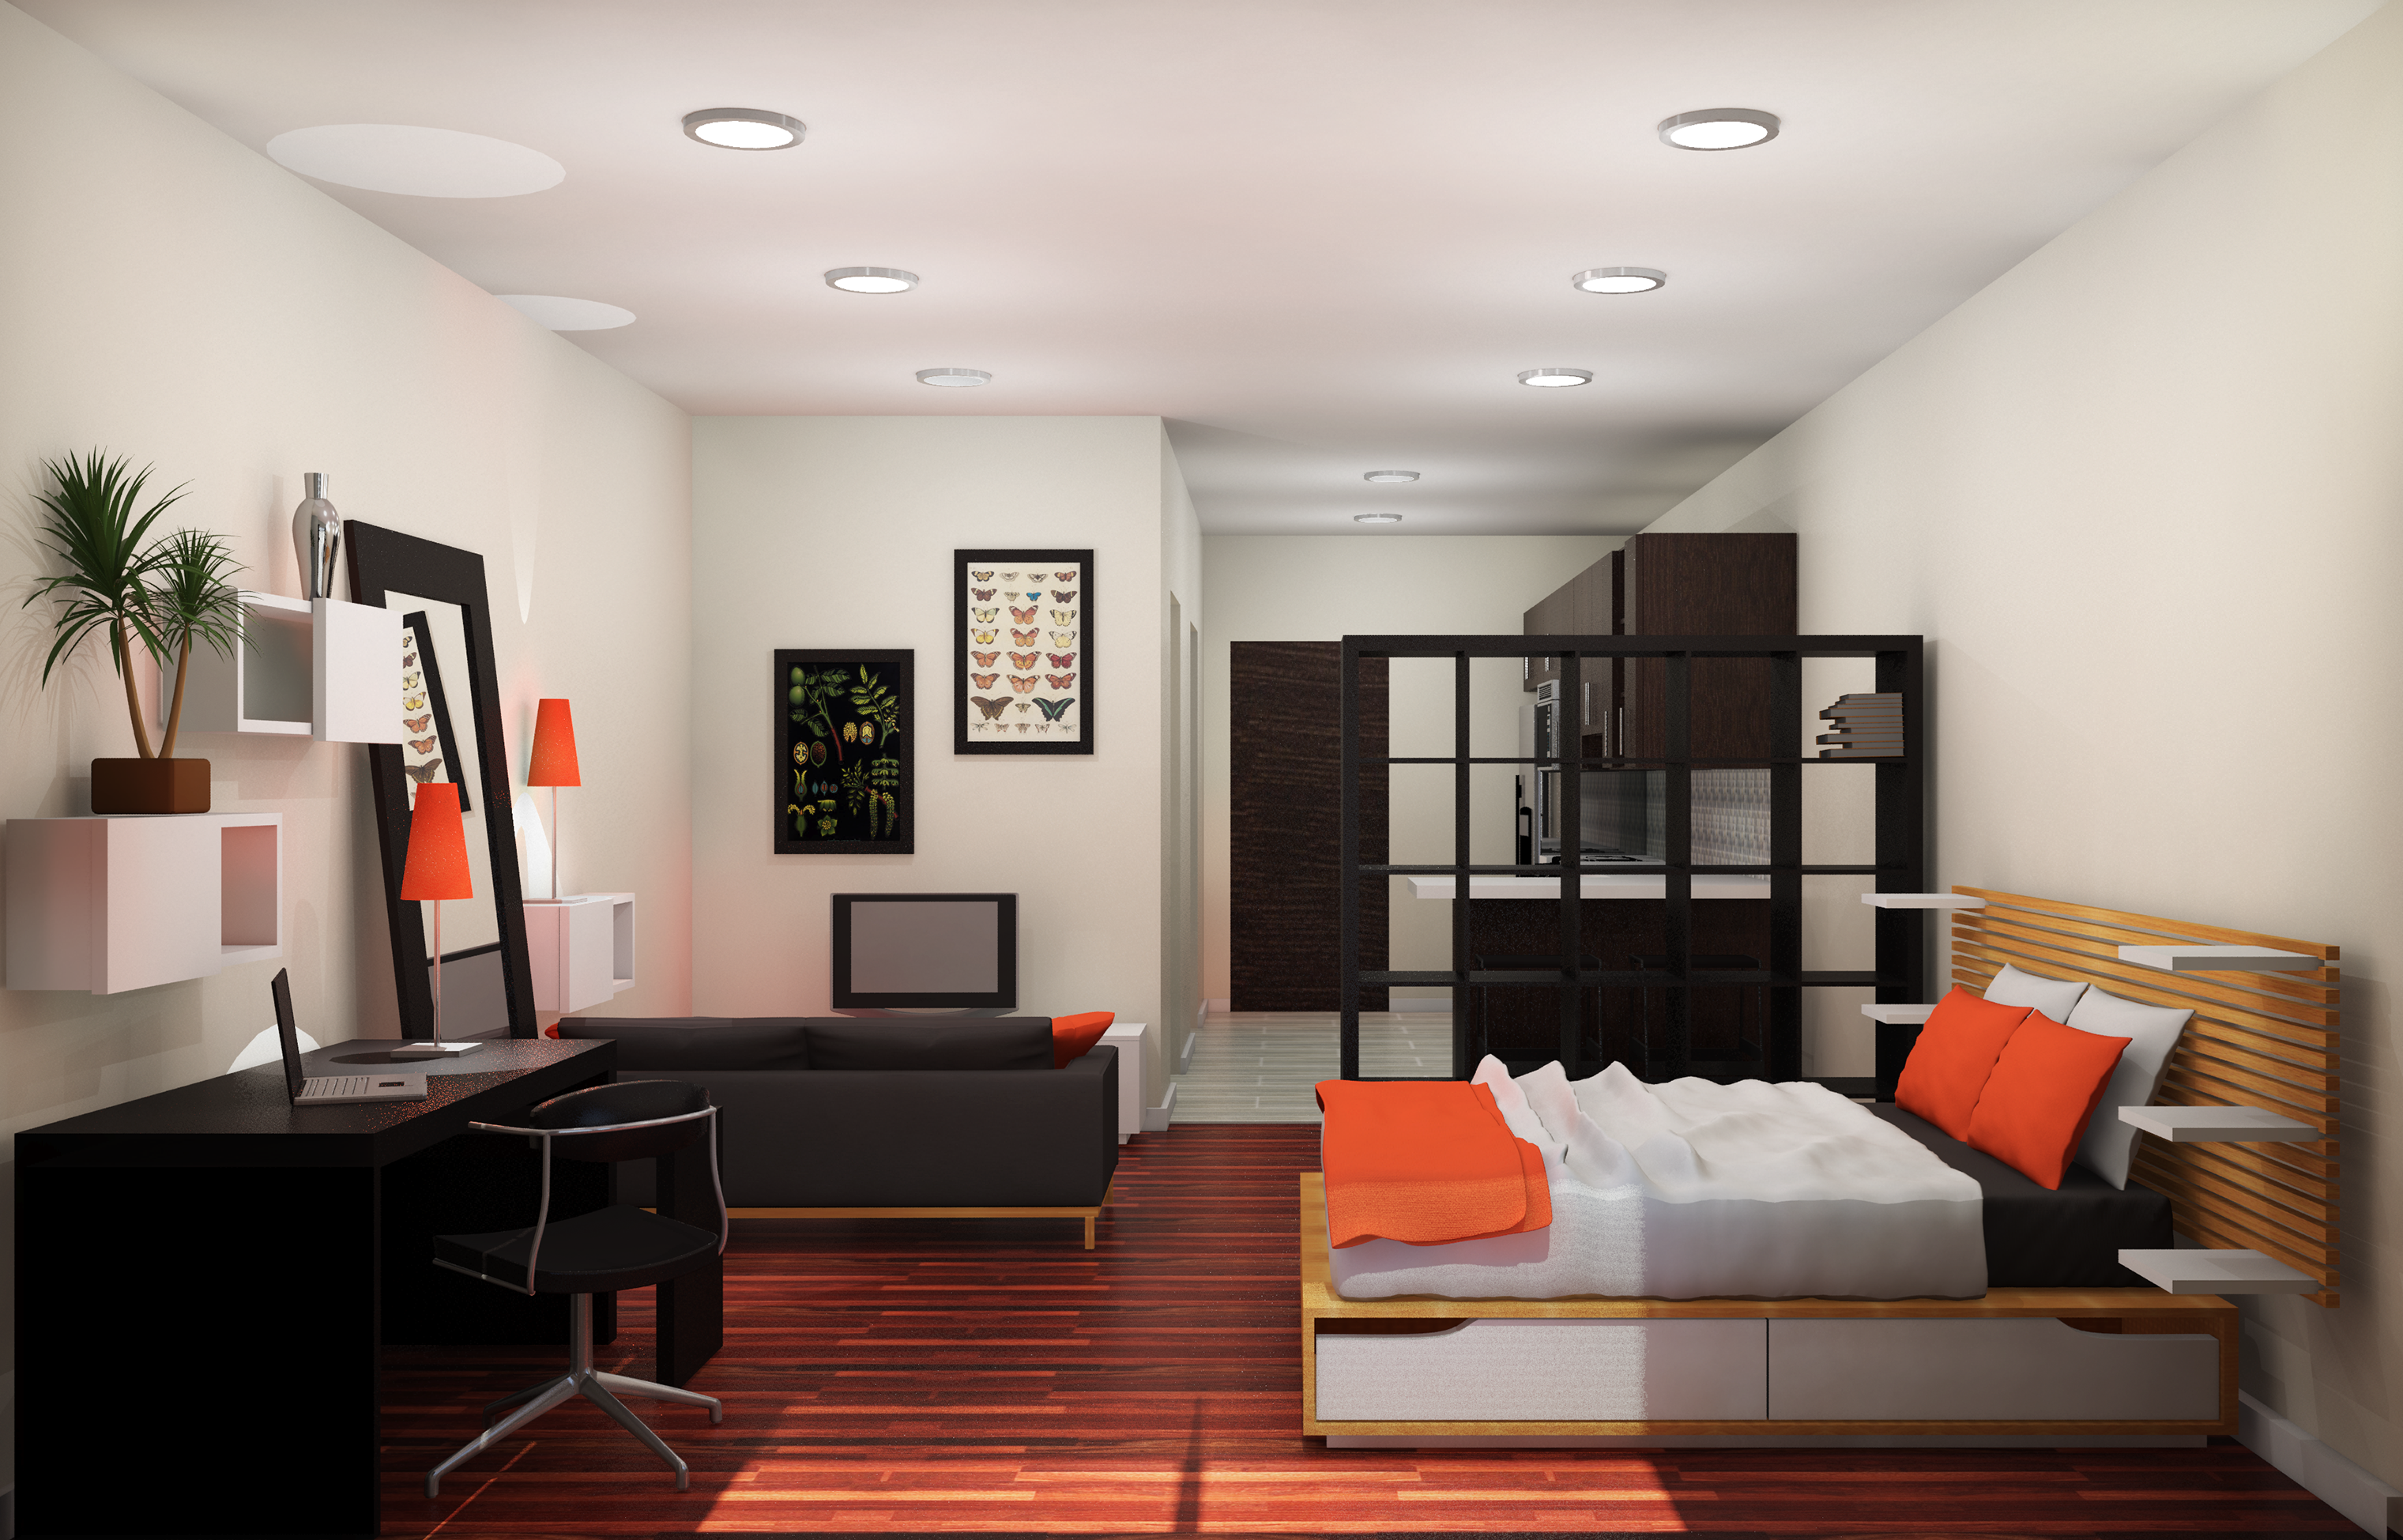 design designed by sarah sapowycz ikea apartment skillman us